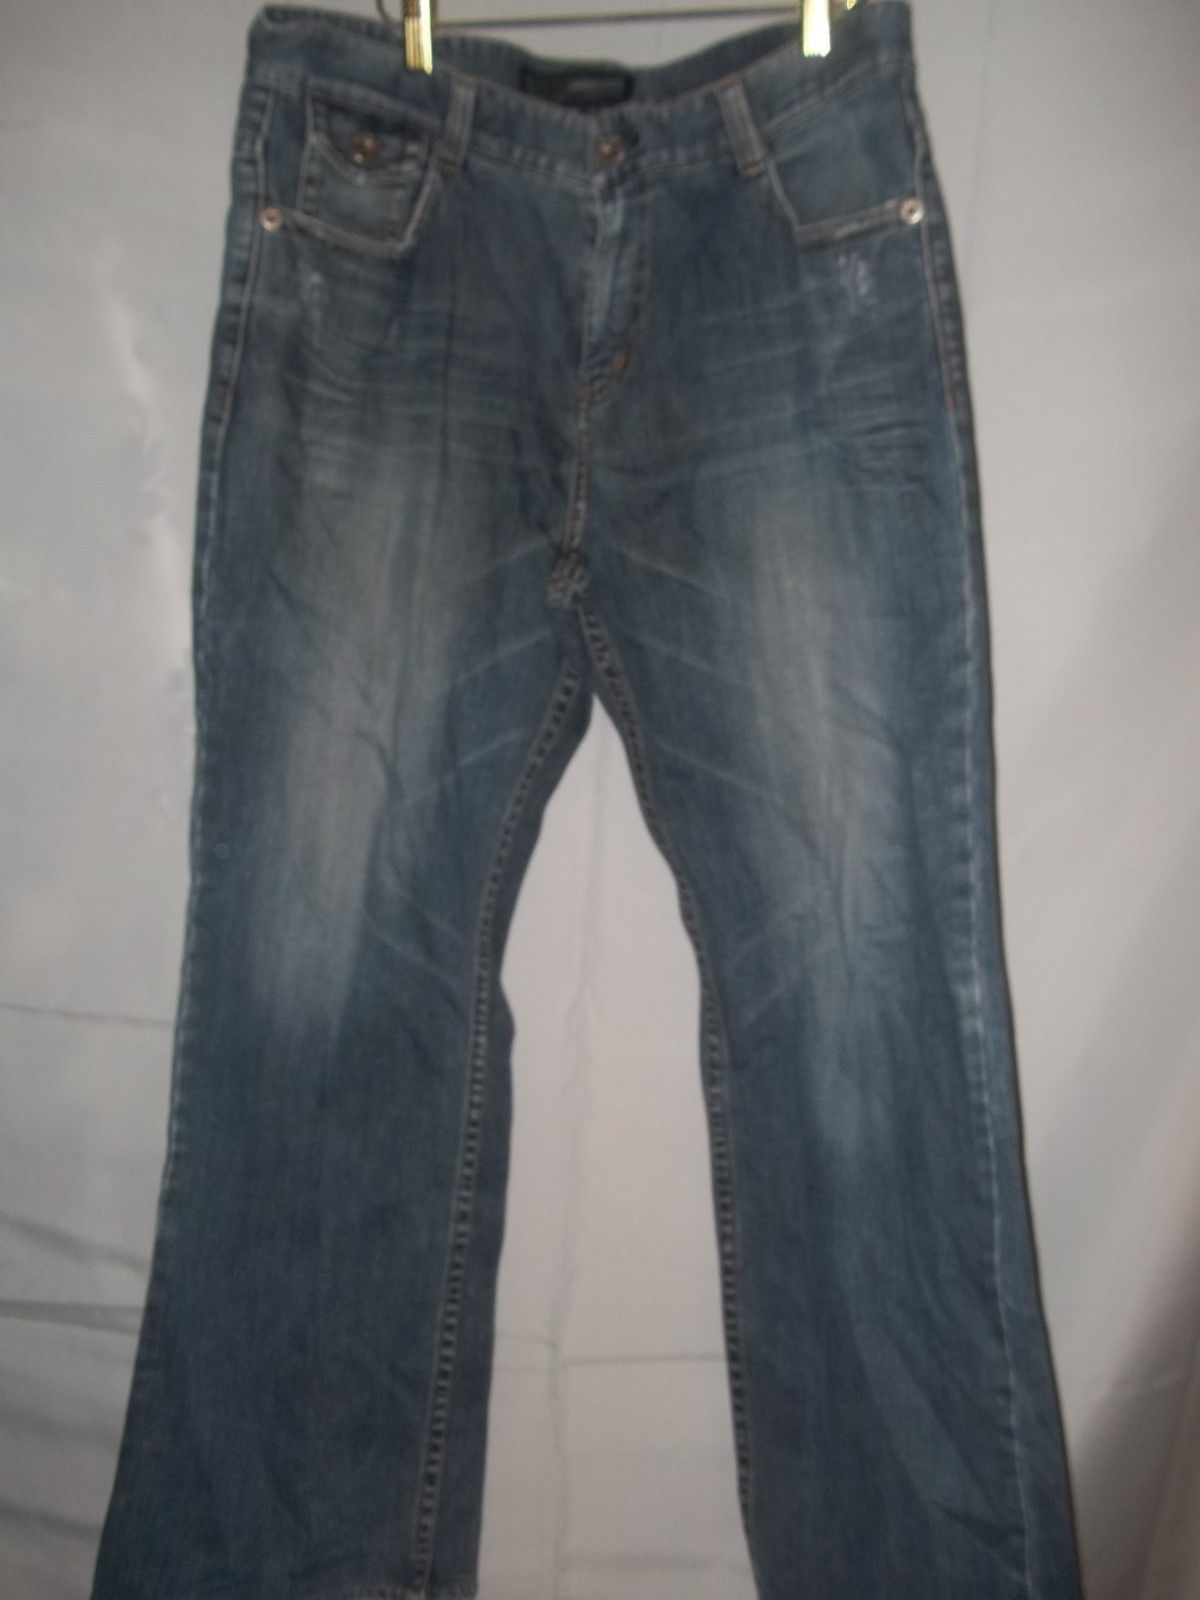 mens size 36 x 30 jambangee jeans blue jeans designer jeans. Black Bedroom Furniture Sets. Home Design Ideas